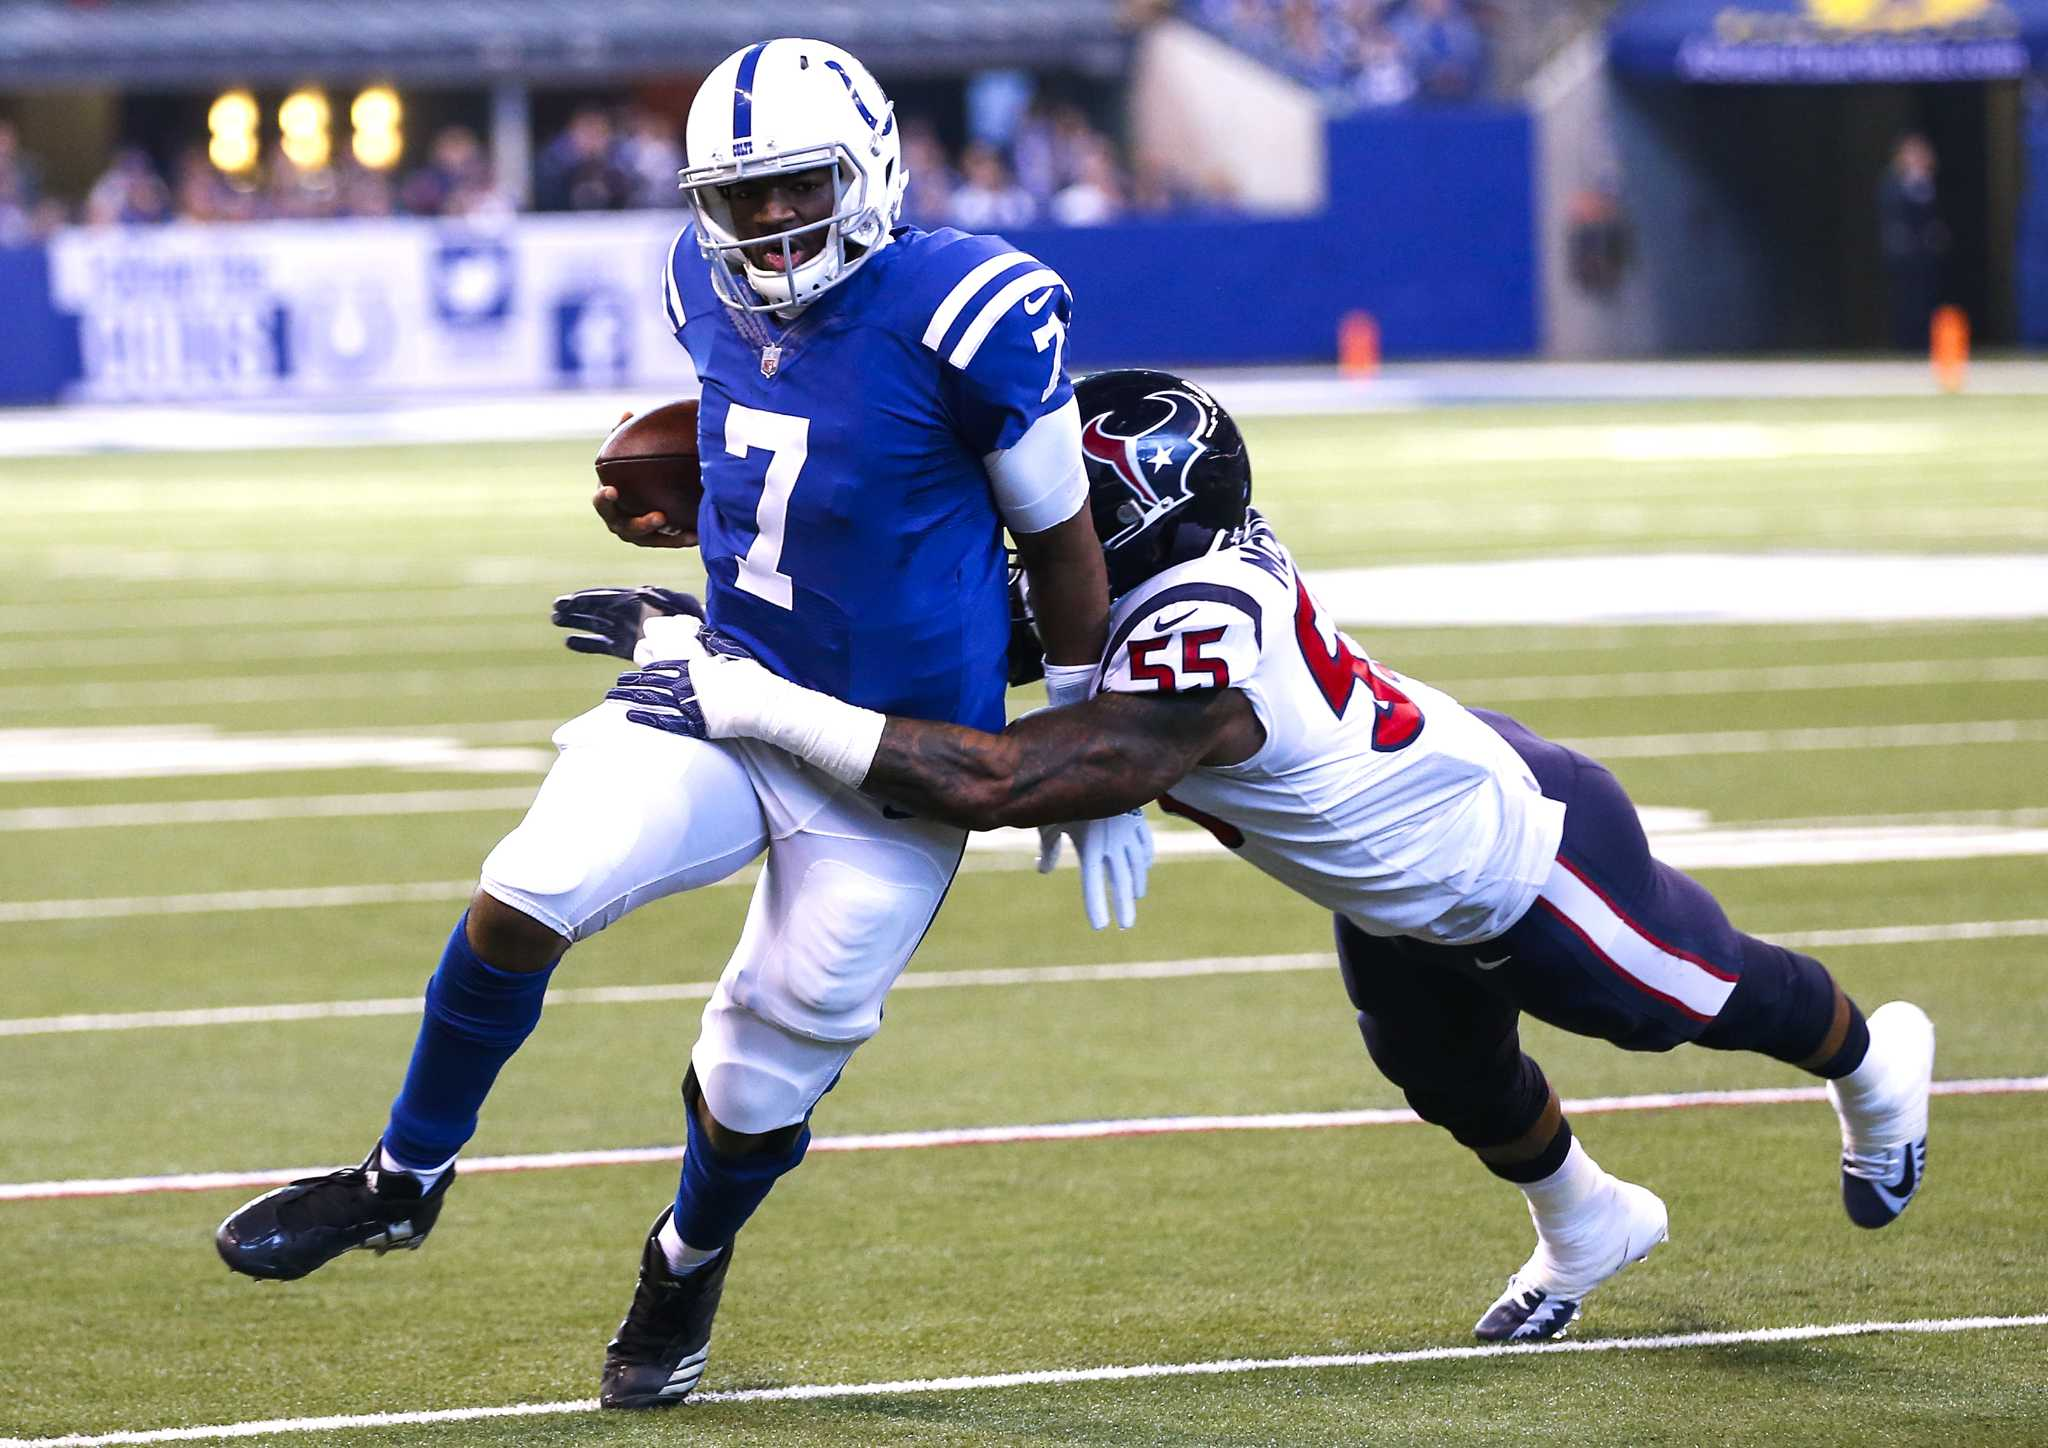 Texans at Colts: Houston Chronicle staff predictions